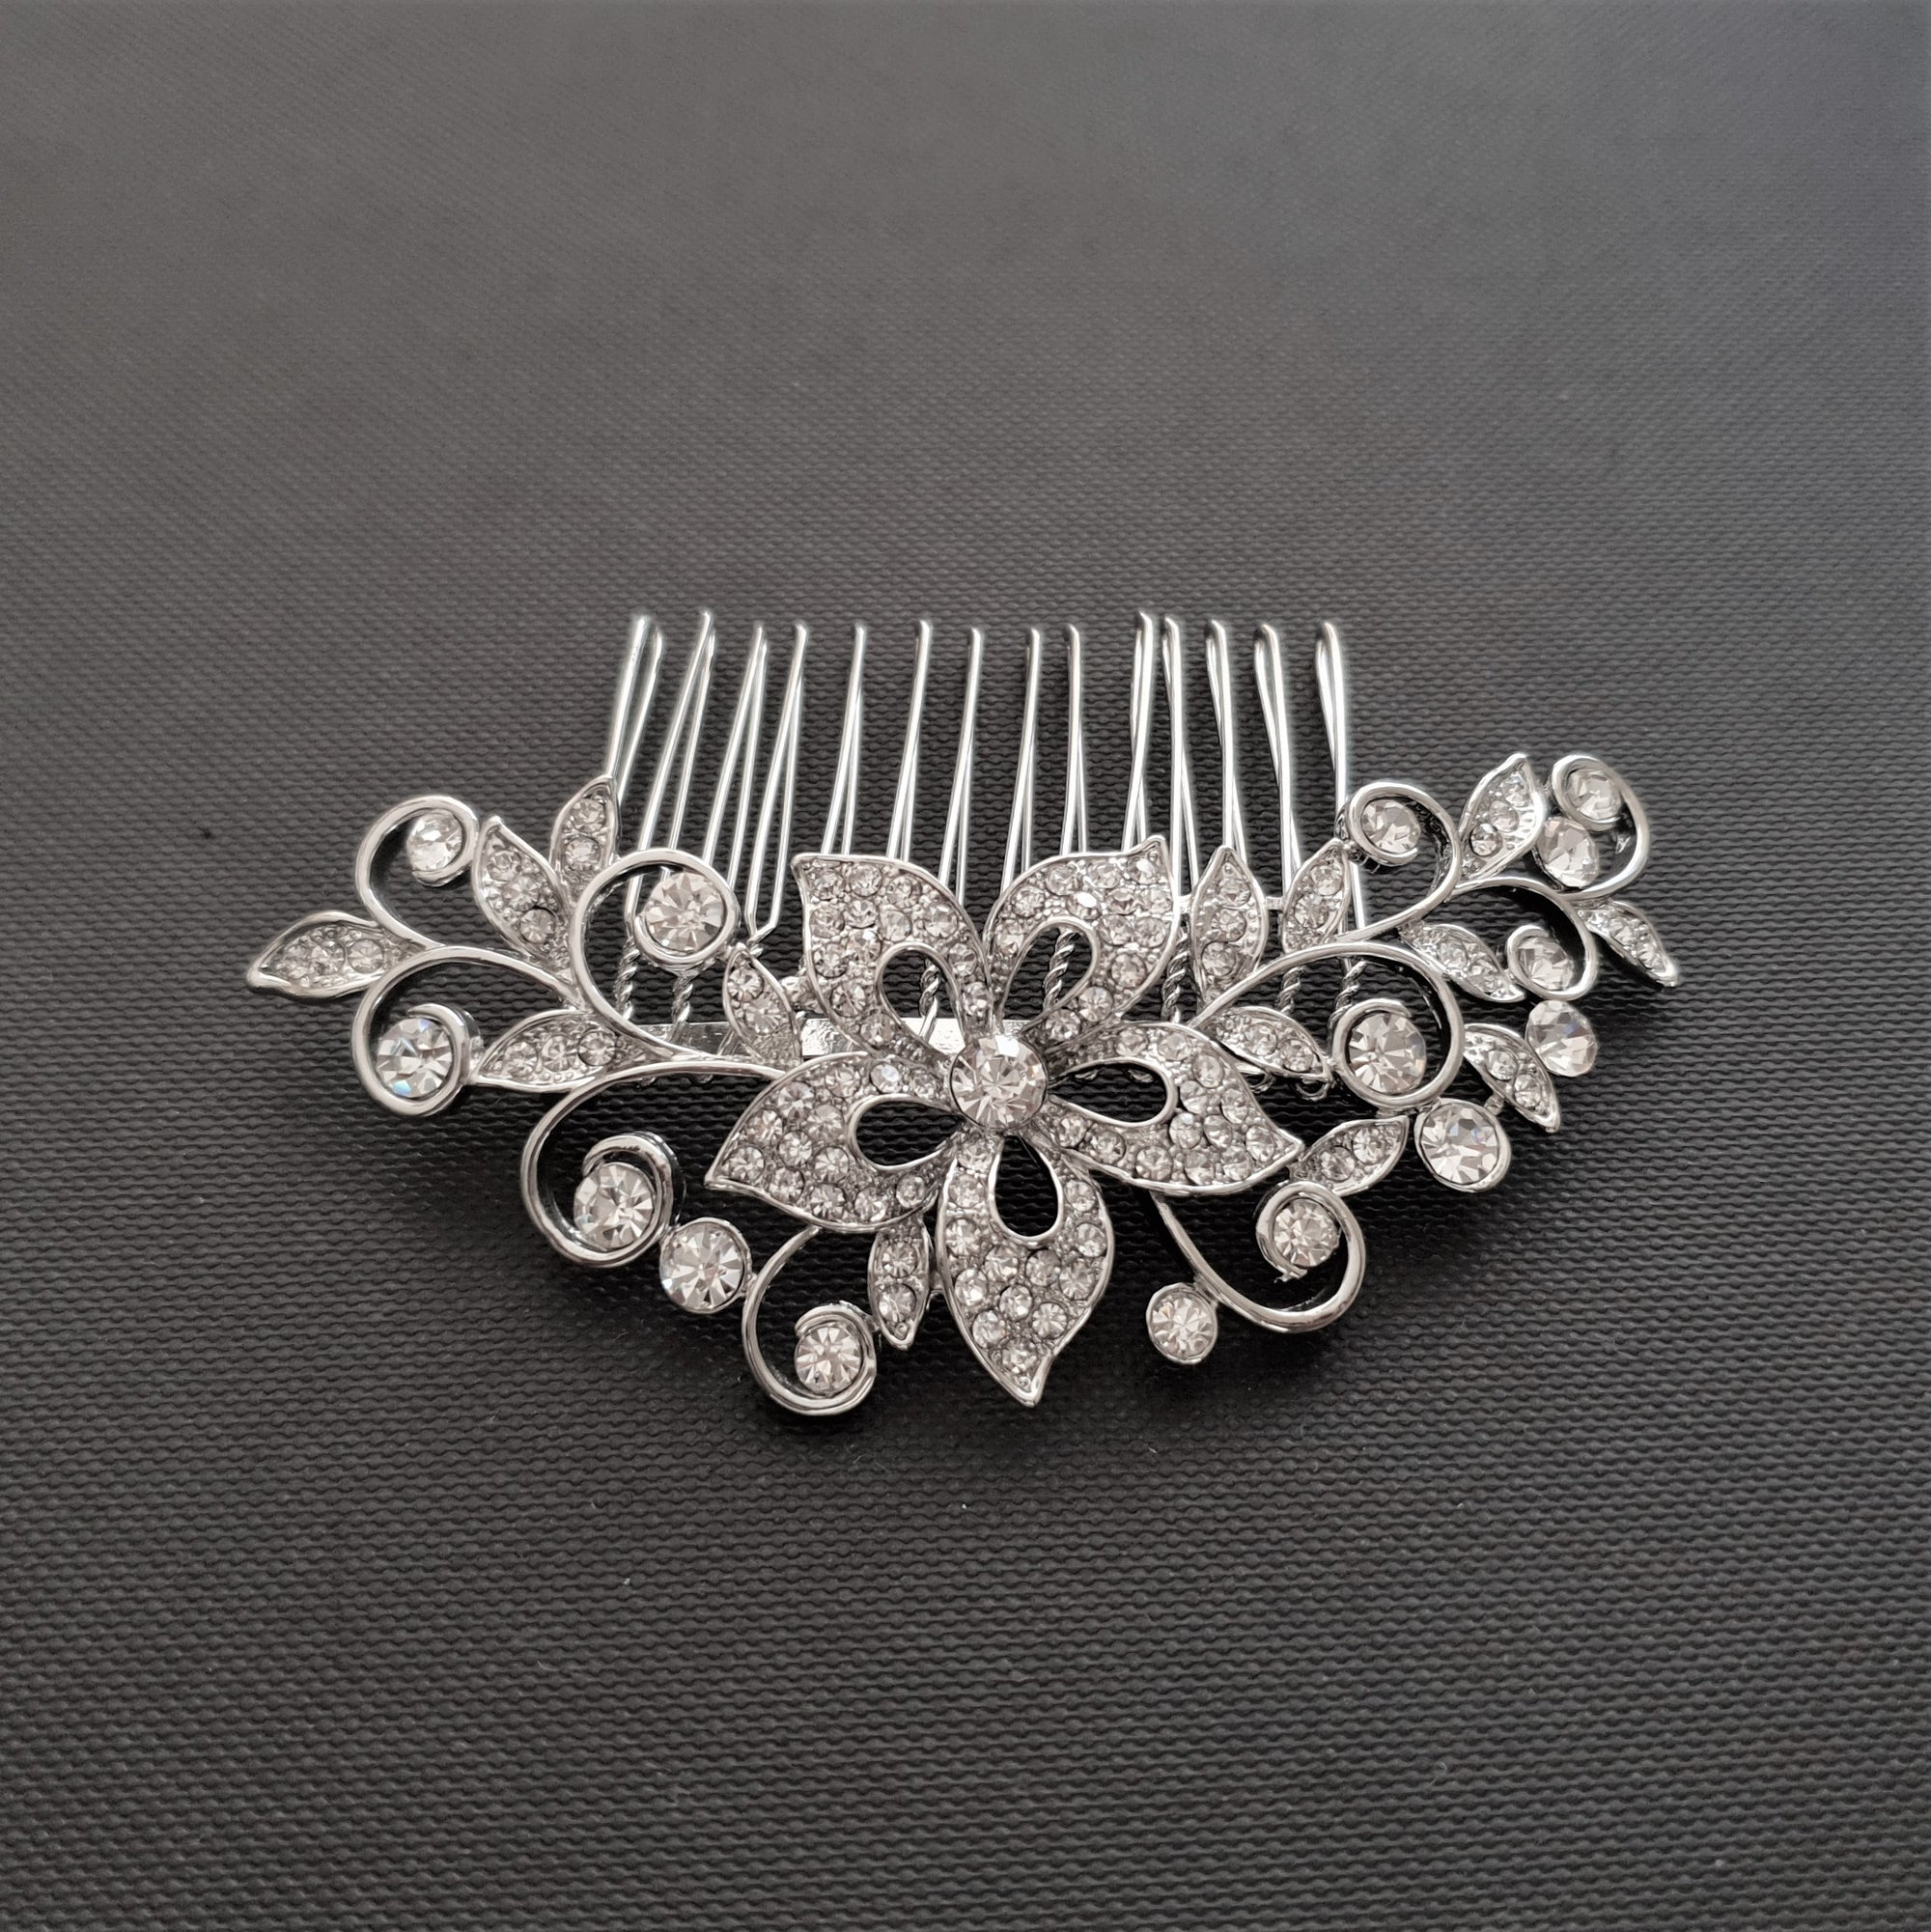 Crystal Flower Vintage Bridal Hair Comb-Fiore